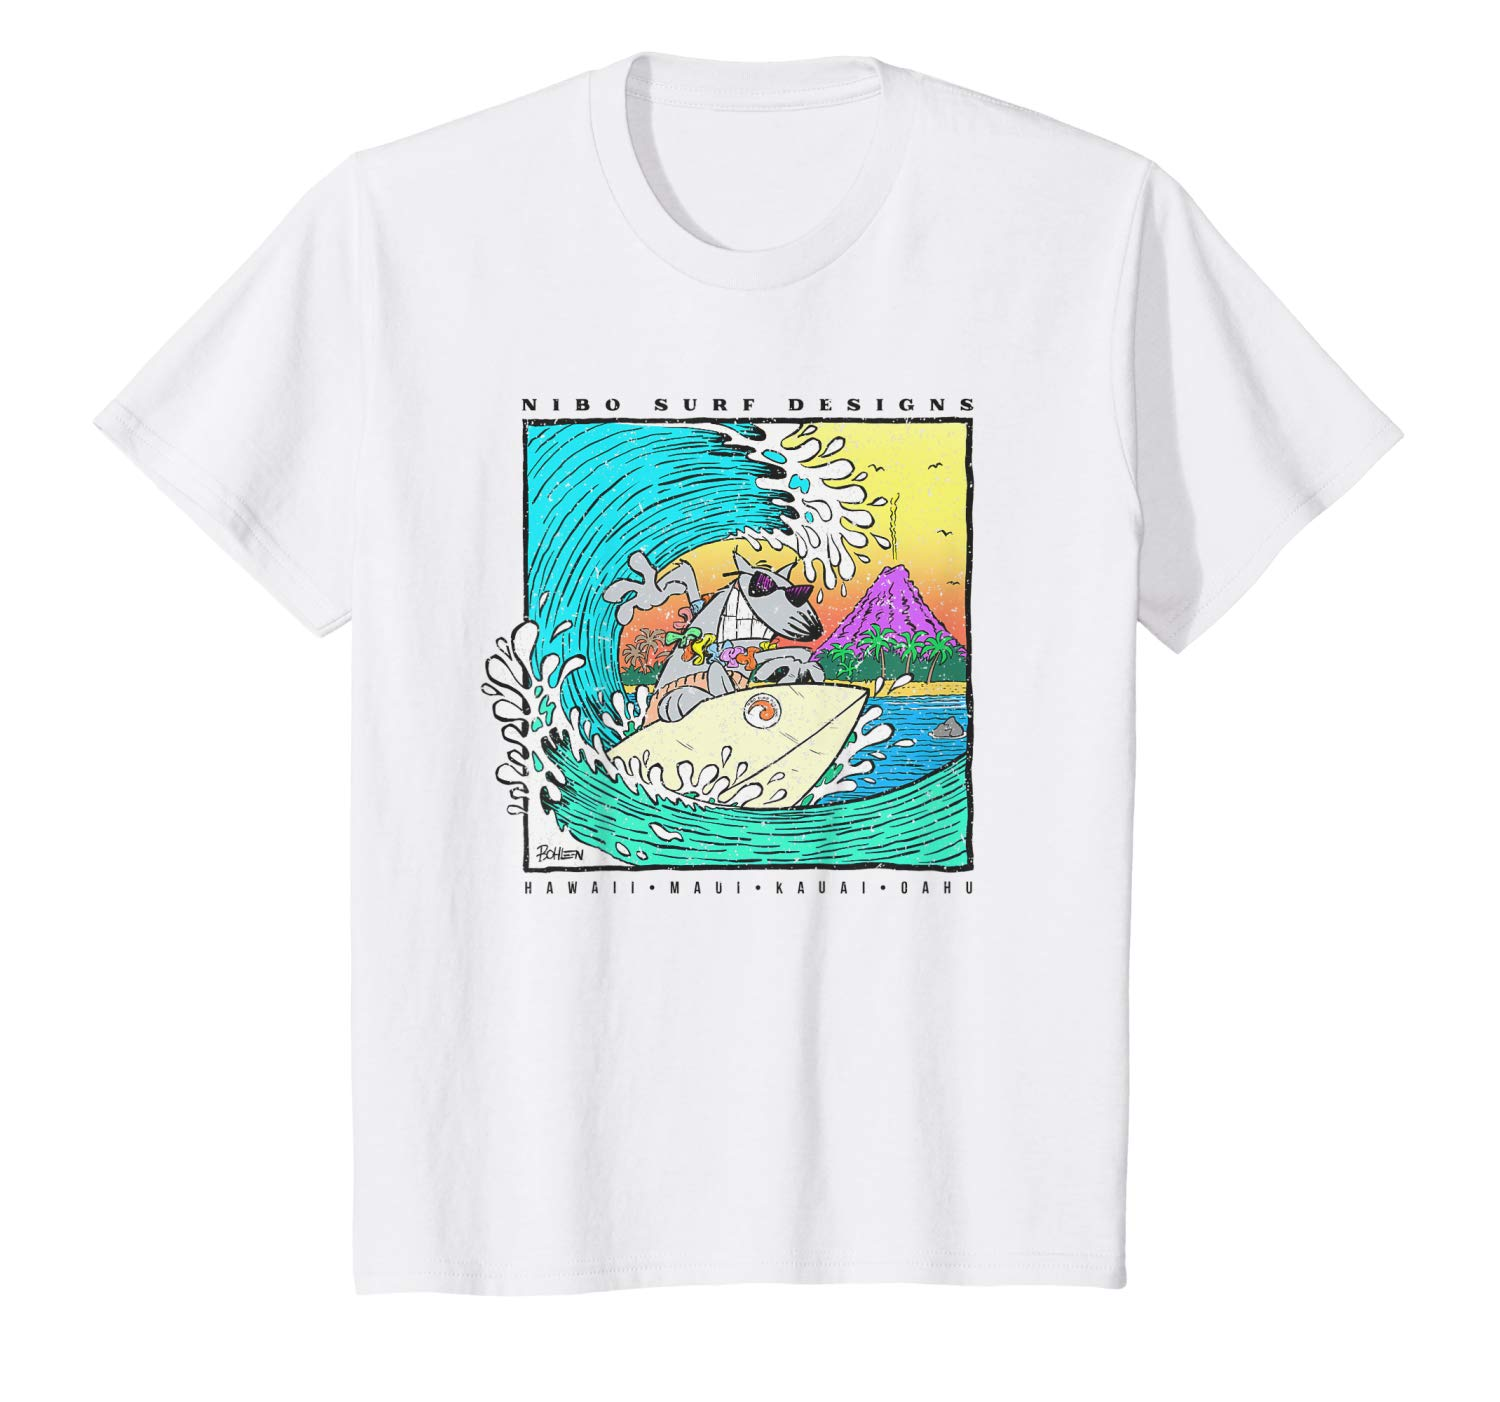 T-Shirt: Kinder Ride the Wave Hawaii Maui Surf Design Illustration T-Shirt